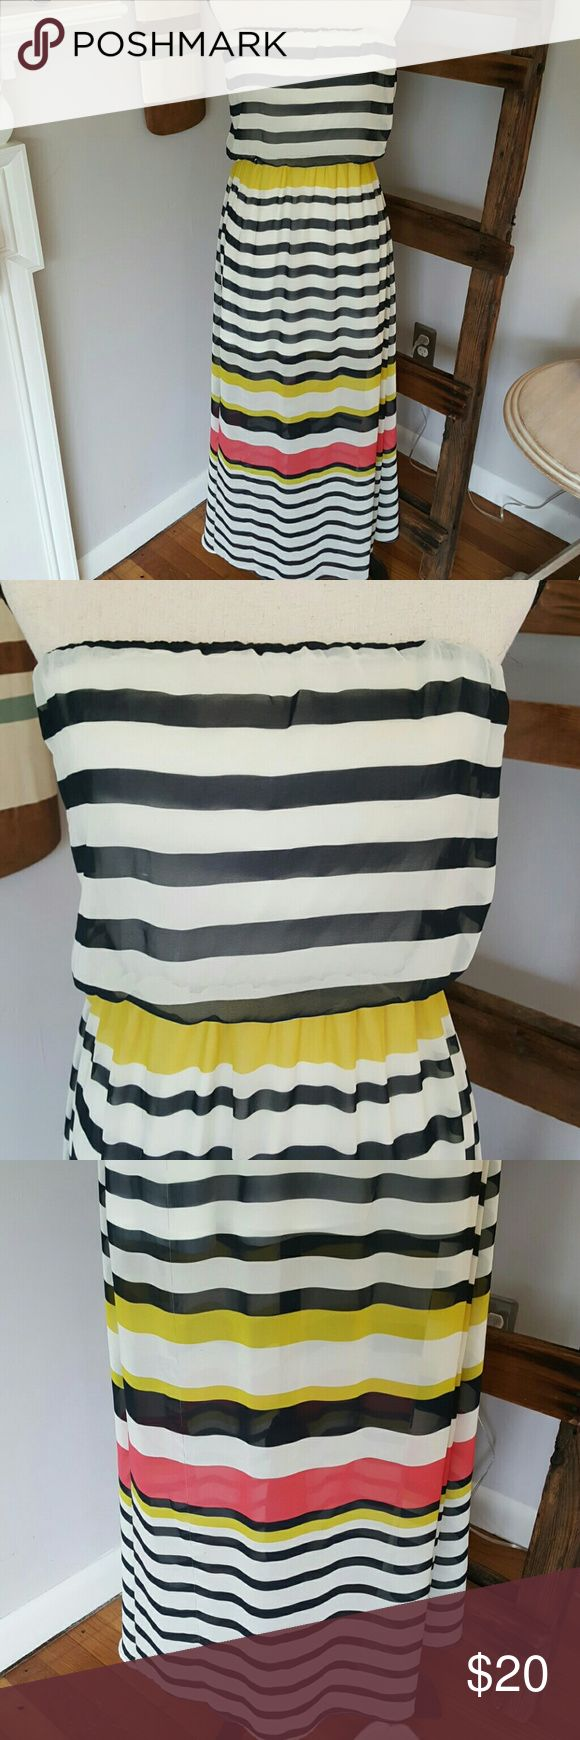 Perfect Summer Maxi dress Worn one time! It's just not for me but perfect for one of you ??  This dress is white with navy stripes, accented with yellow and coral stripes on the wait and bottom. It's made of a light chiffon-y material and is lined inside (the skirt lining goes down to just above the knee, as is the style).  The waist and top are elastic so it won't slip down out of place. This dress is perfect for BBQs, derby parties, or even a casual wedding.   Buy before 12pm EST and I'll…